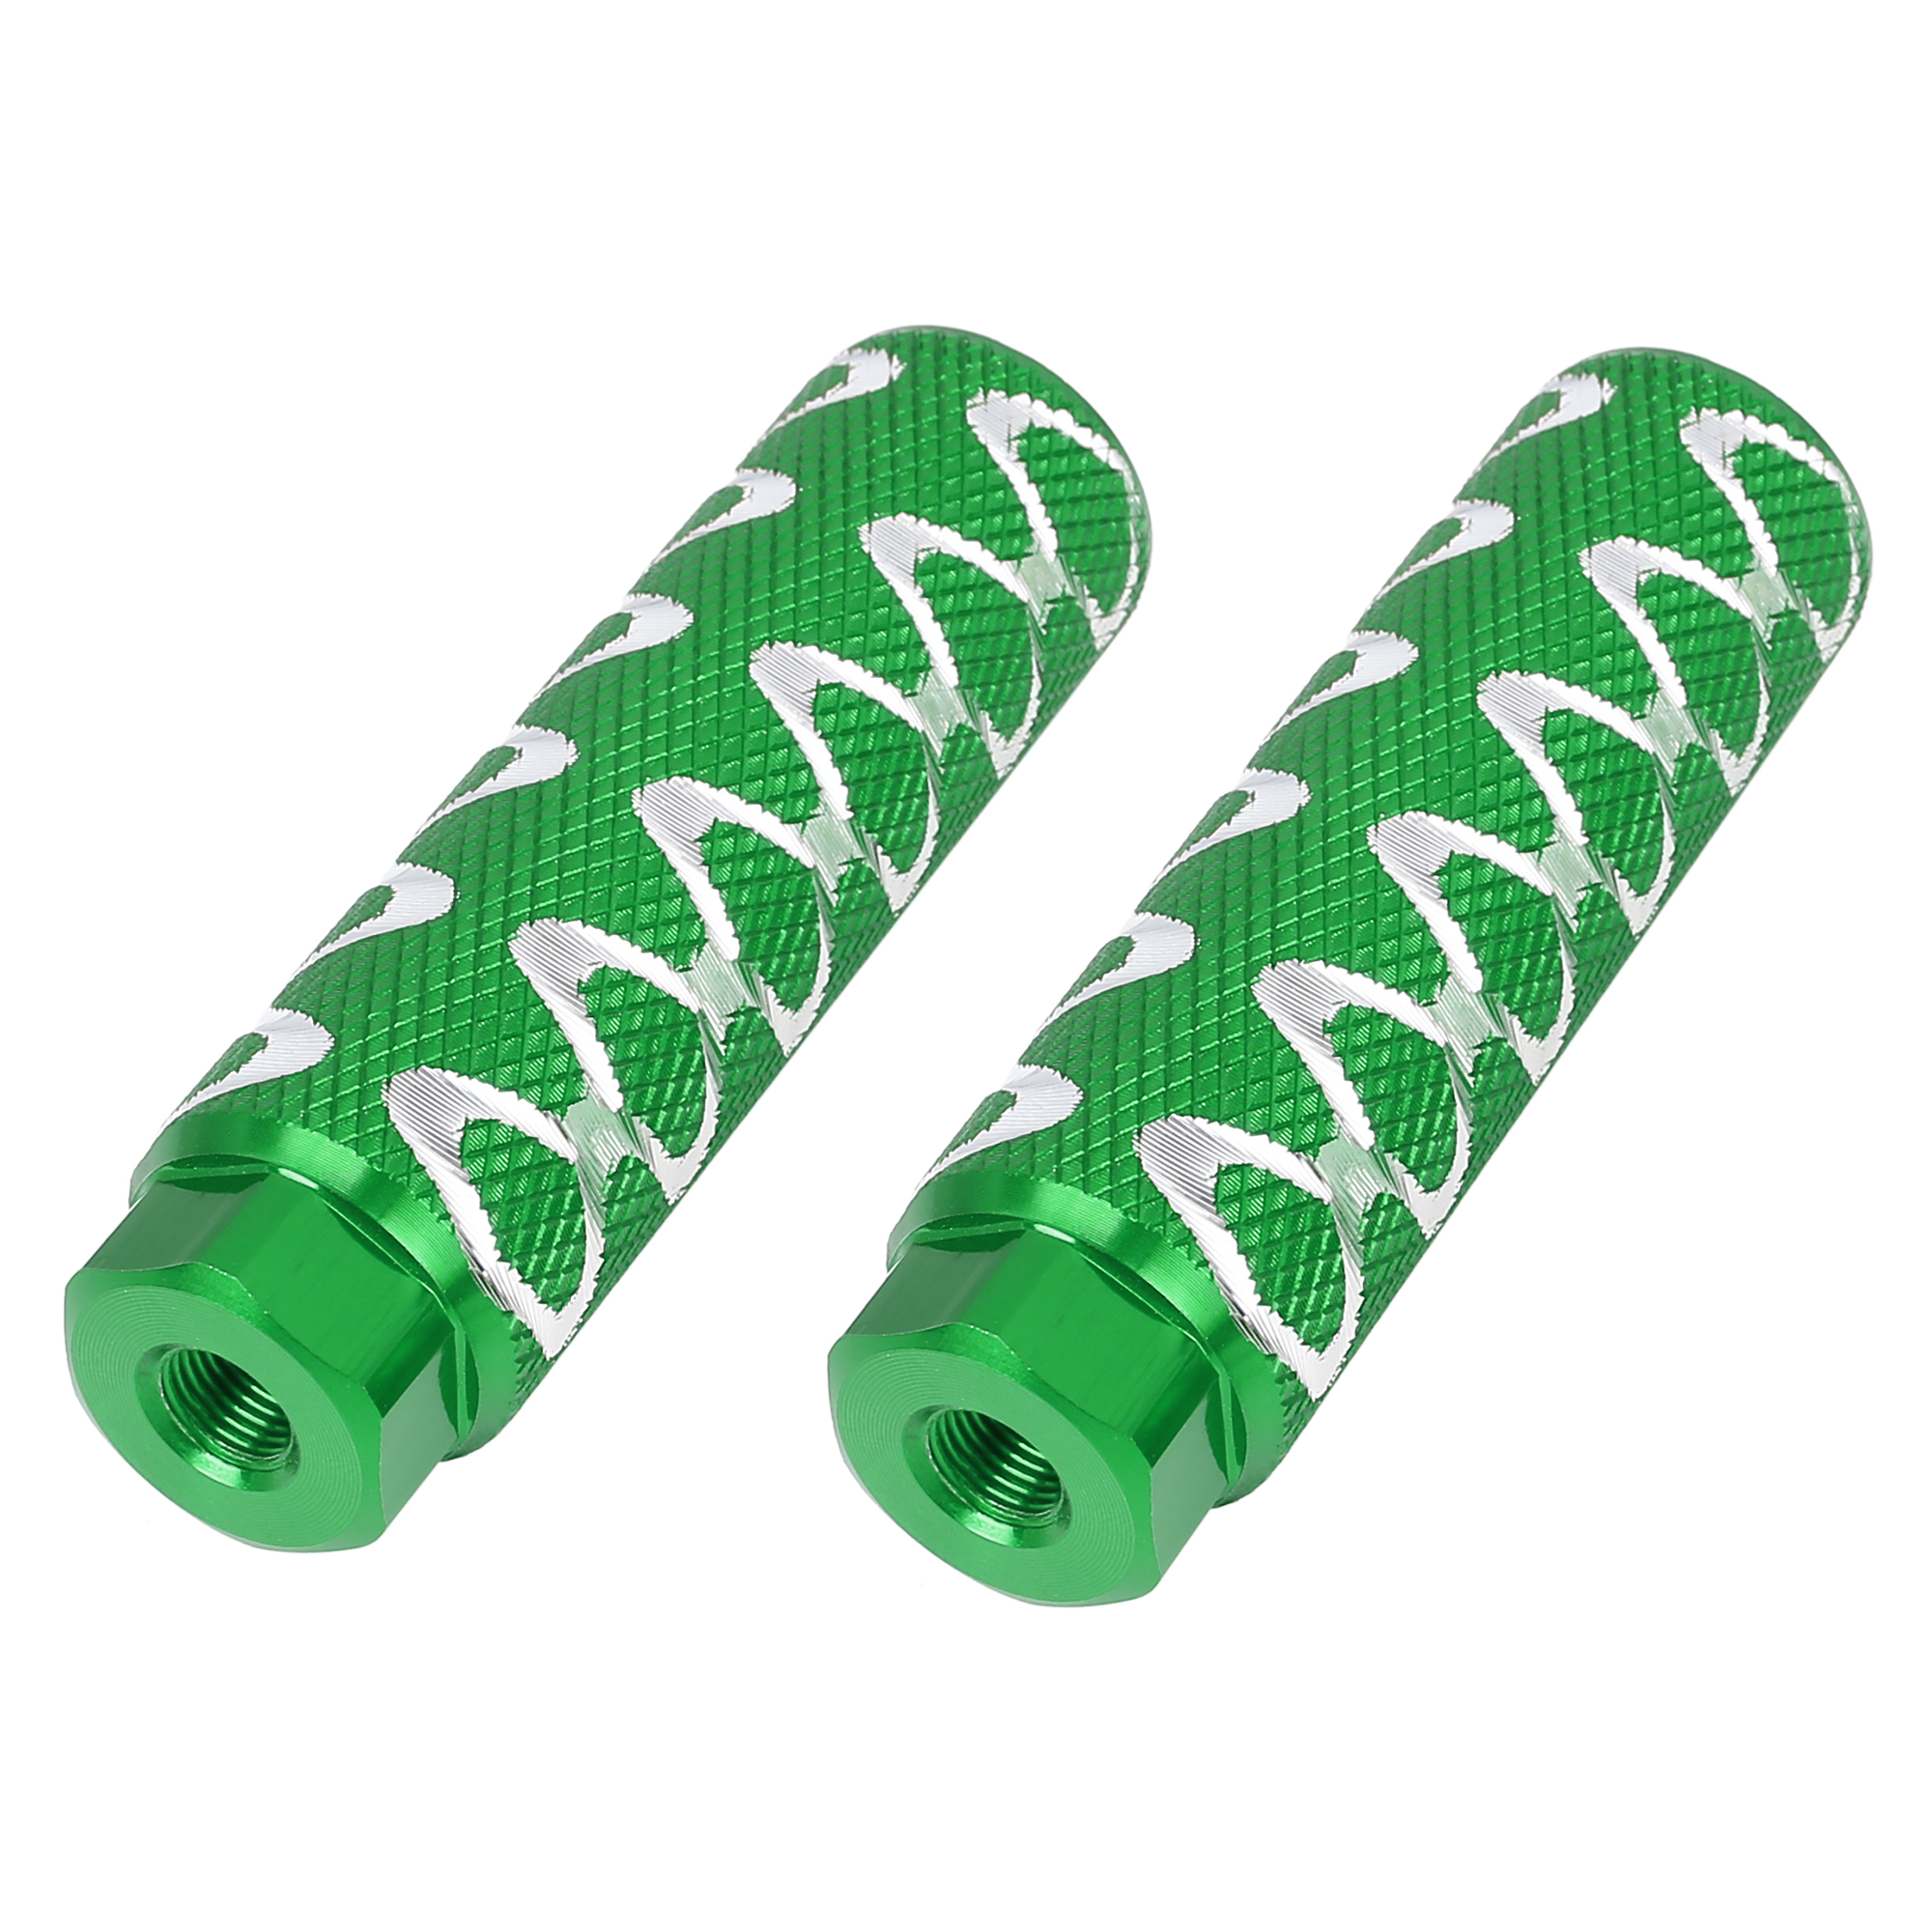 Pair Round Wave Stripes Bike Axle Rear Foot Pegs Fit 3/8 Inch 100x28mm Green